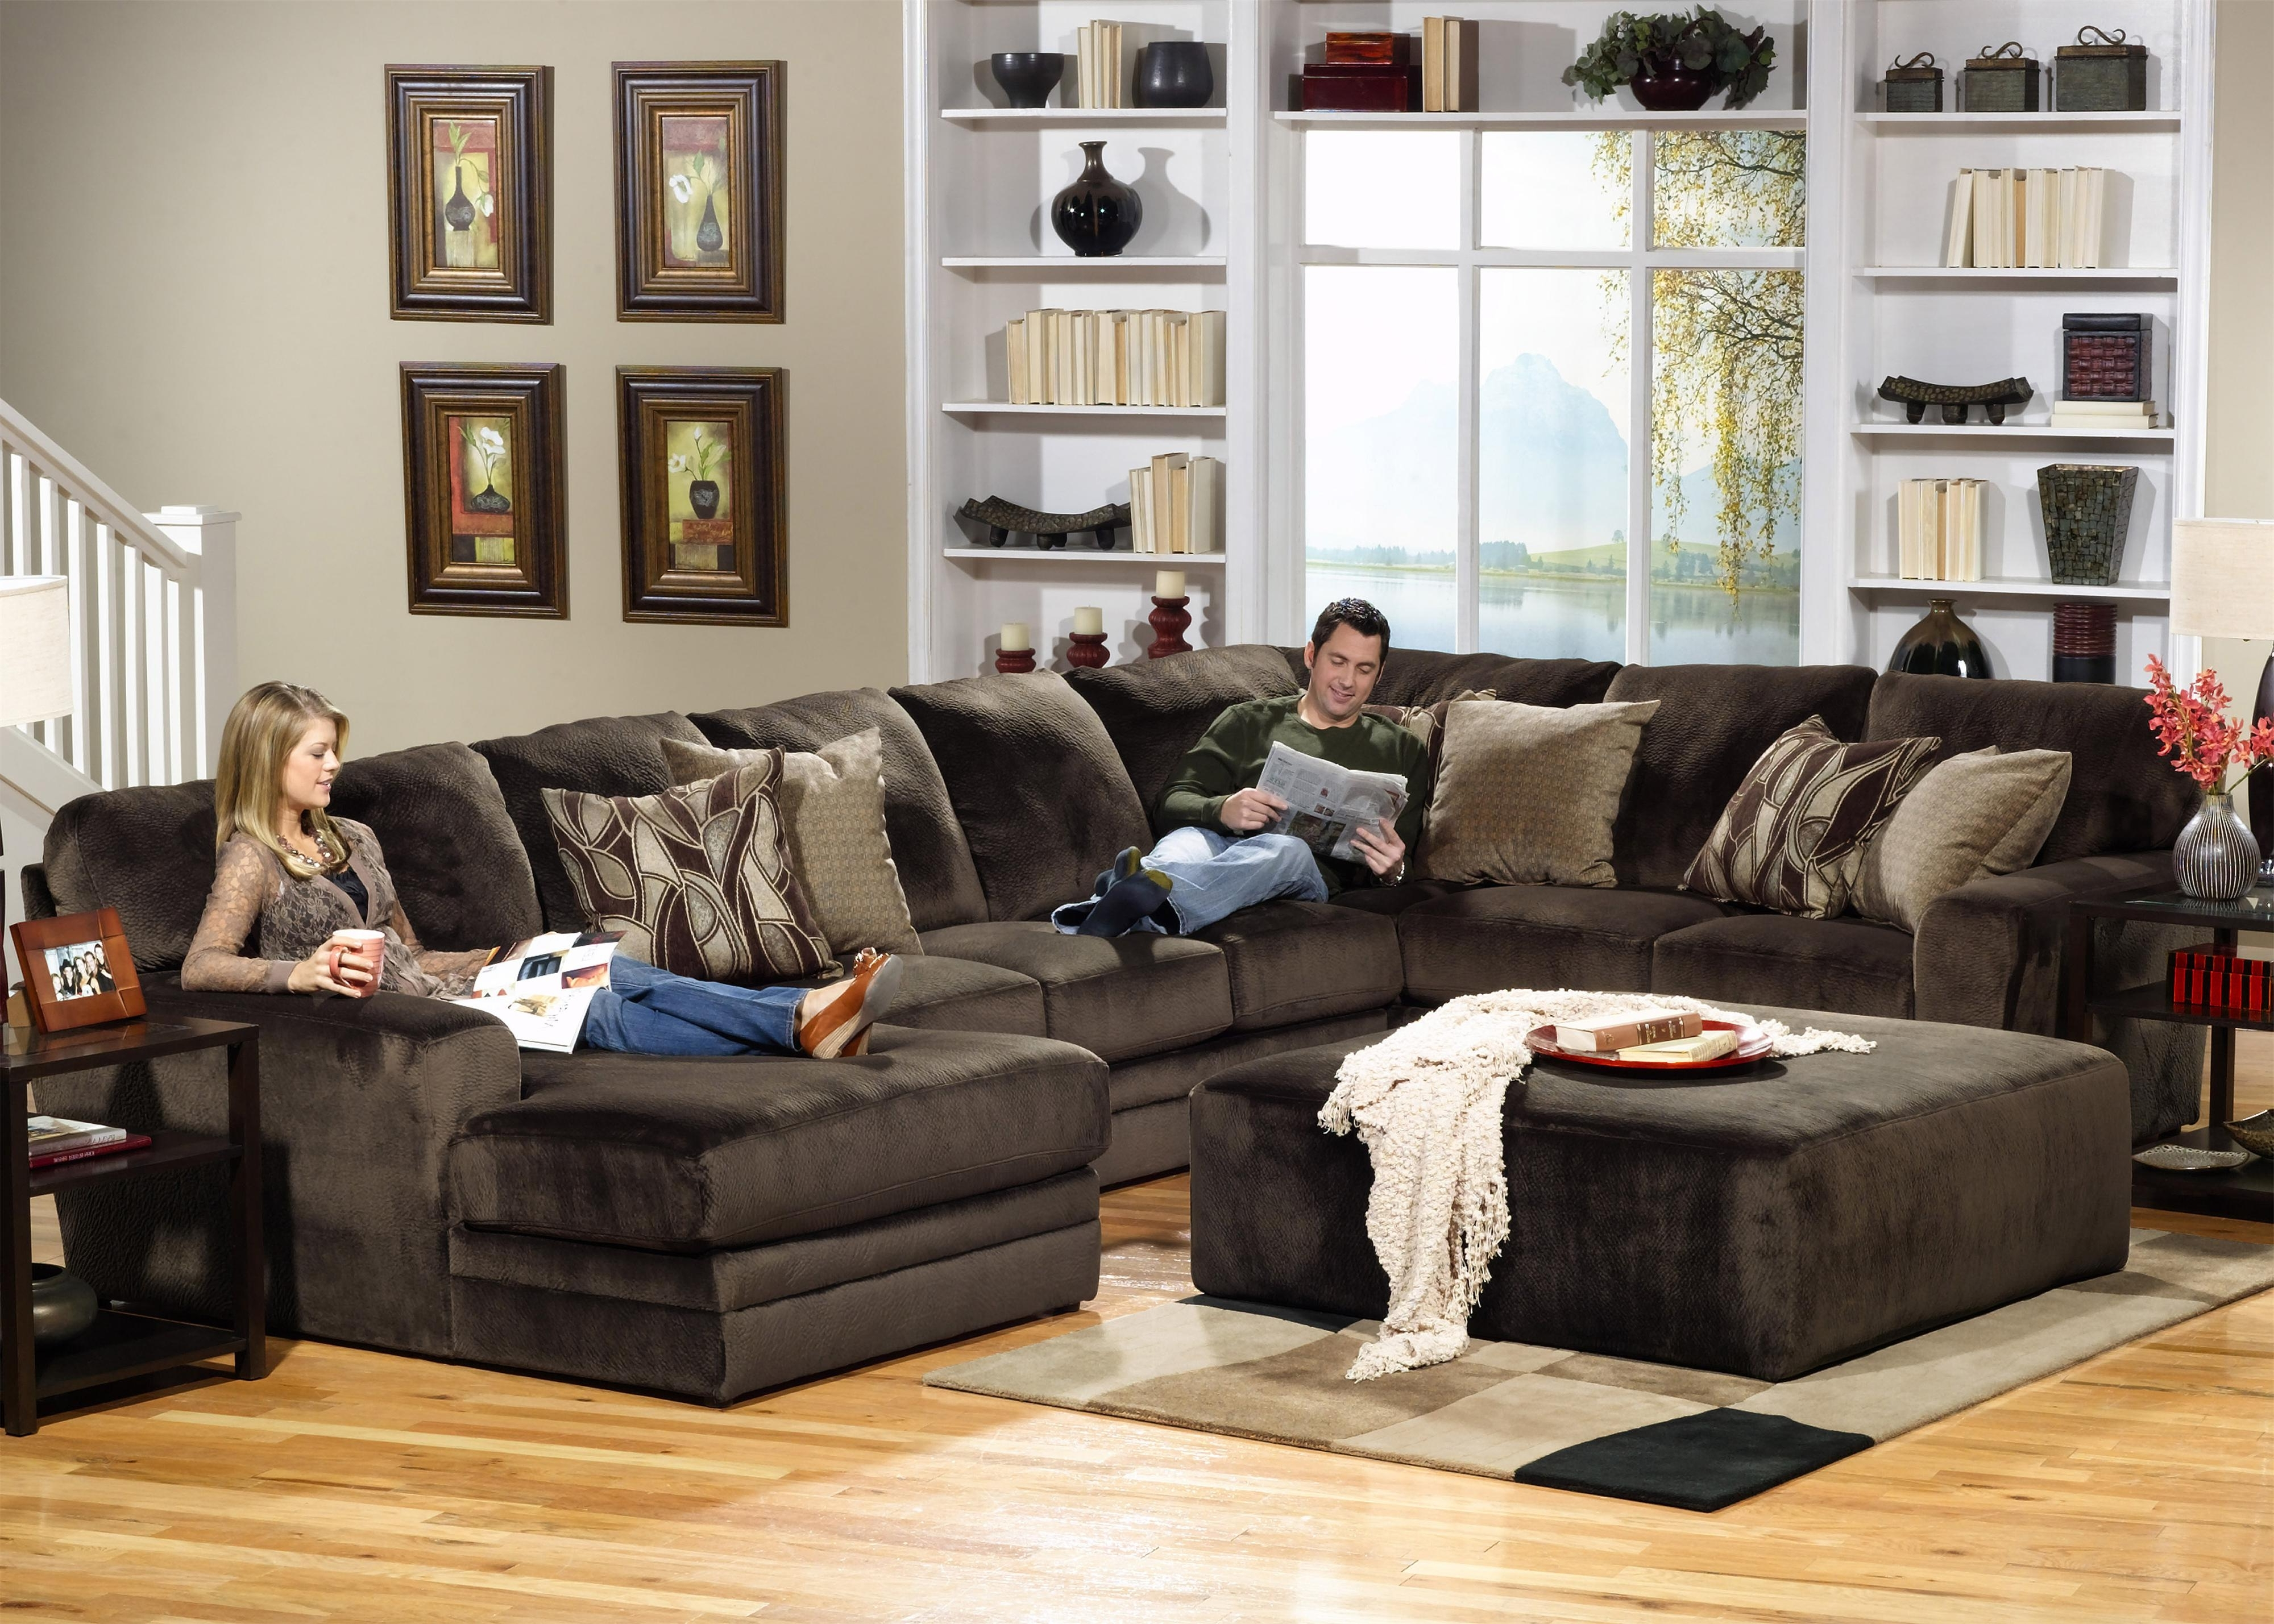 Hickory Nc Sectional Sofas For Favorite Living Room Design : Winston Kh Living Room Furniture Hickory Nc (View 2 of 15)